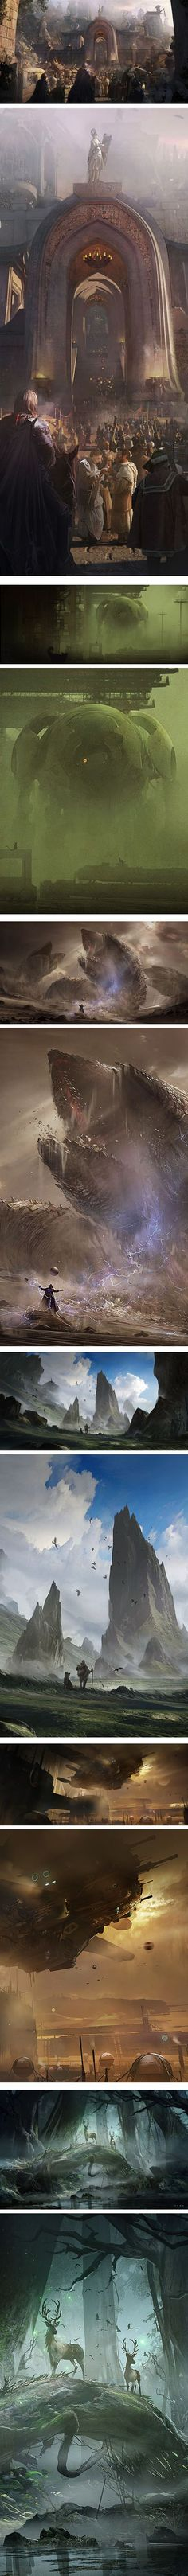 Eduardo Pena --------------------------------------------------------------------- Big scale environments, interesting to look at